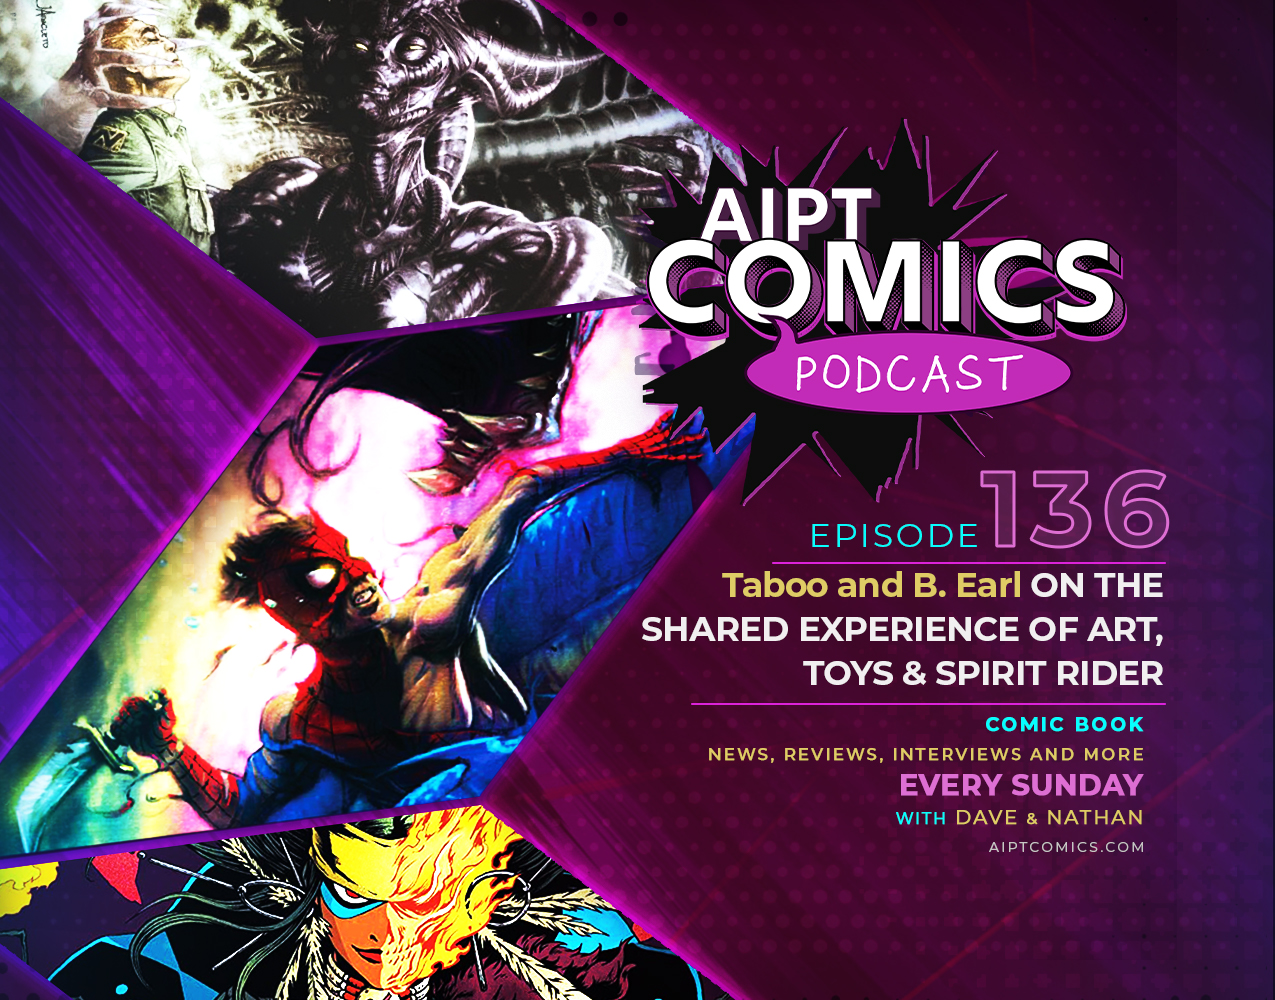 AIPT Comics podcast episode 136: Taboo and B. Earl on the shared experience of art, toys & Spirit Rider